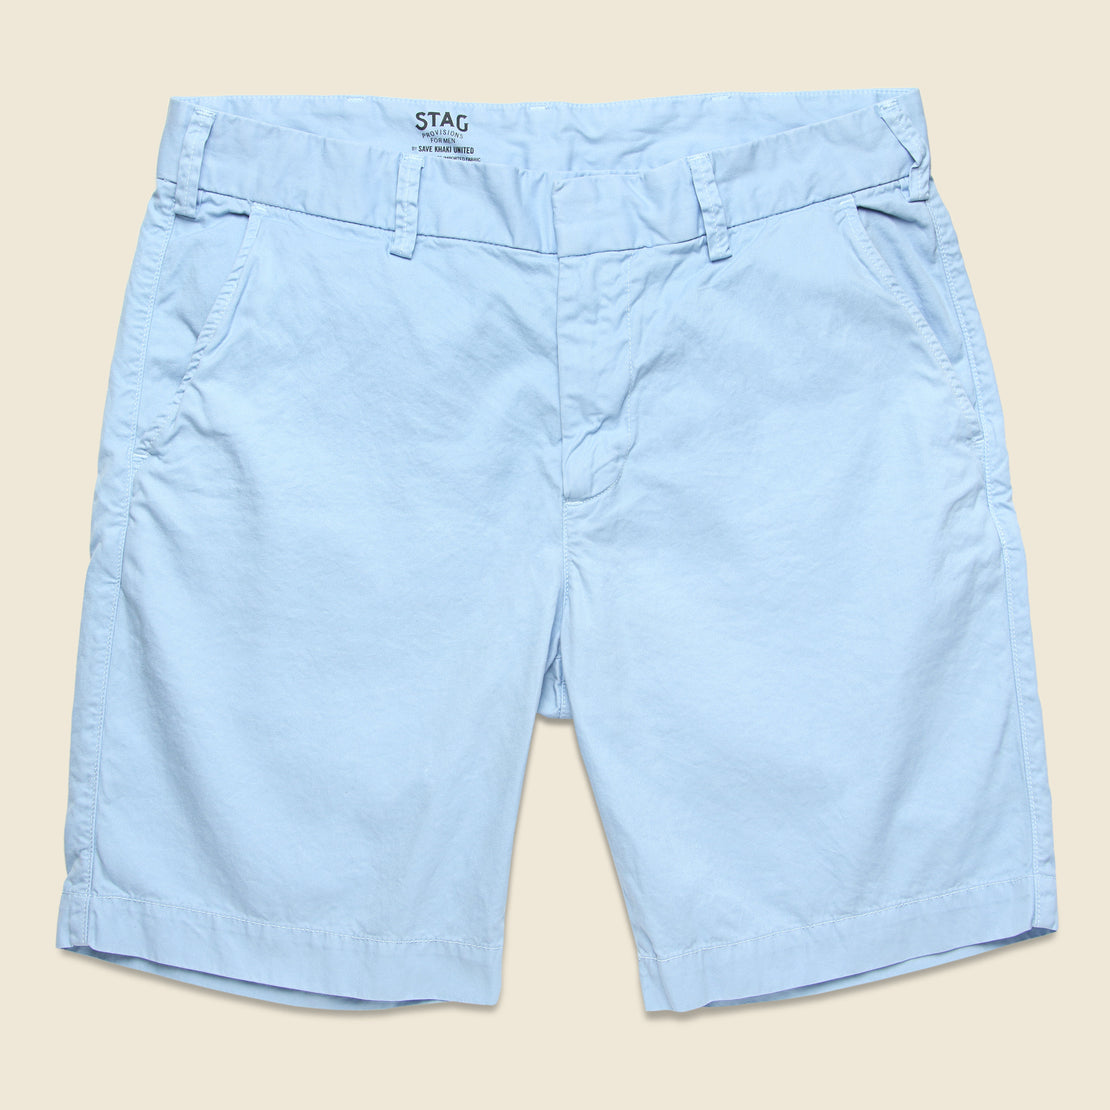 Save Khaki Twill Bermuda Short - Surf